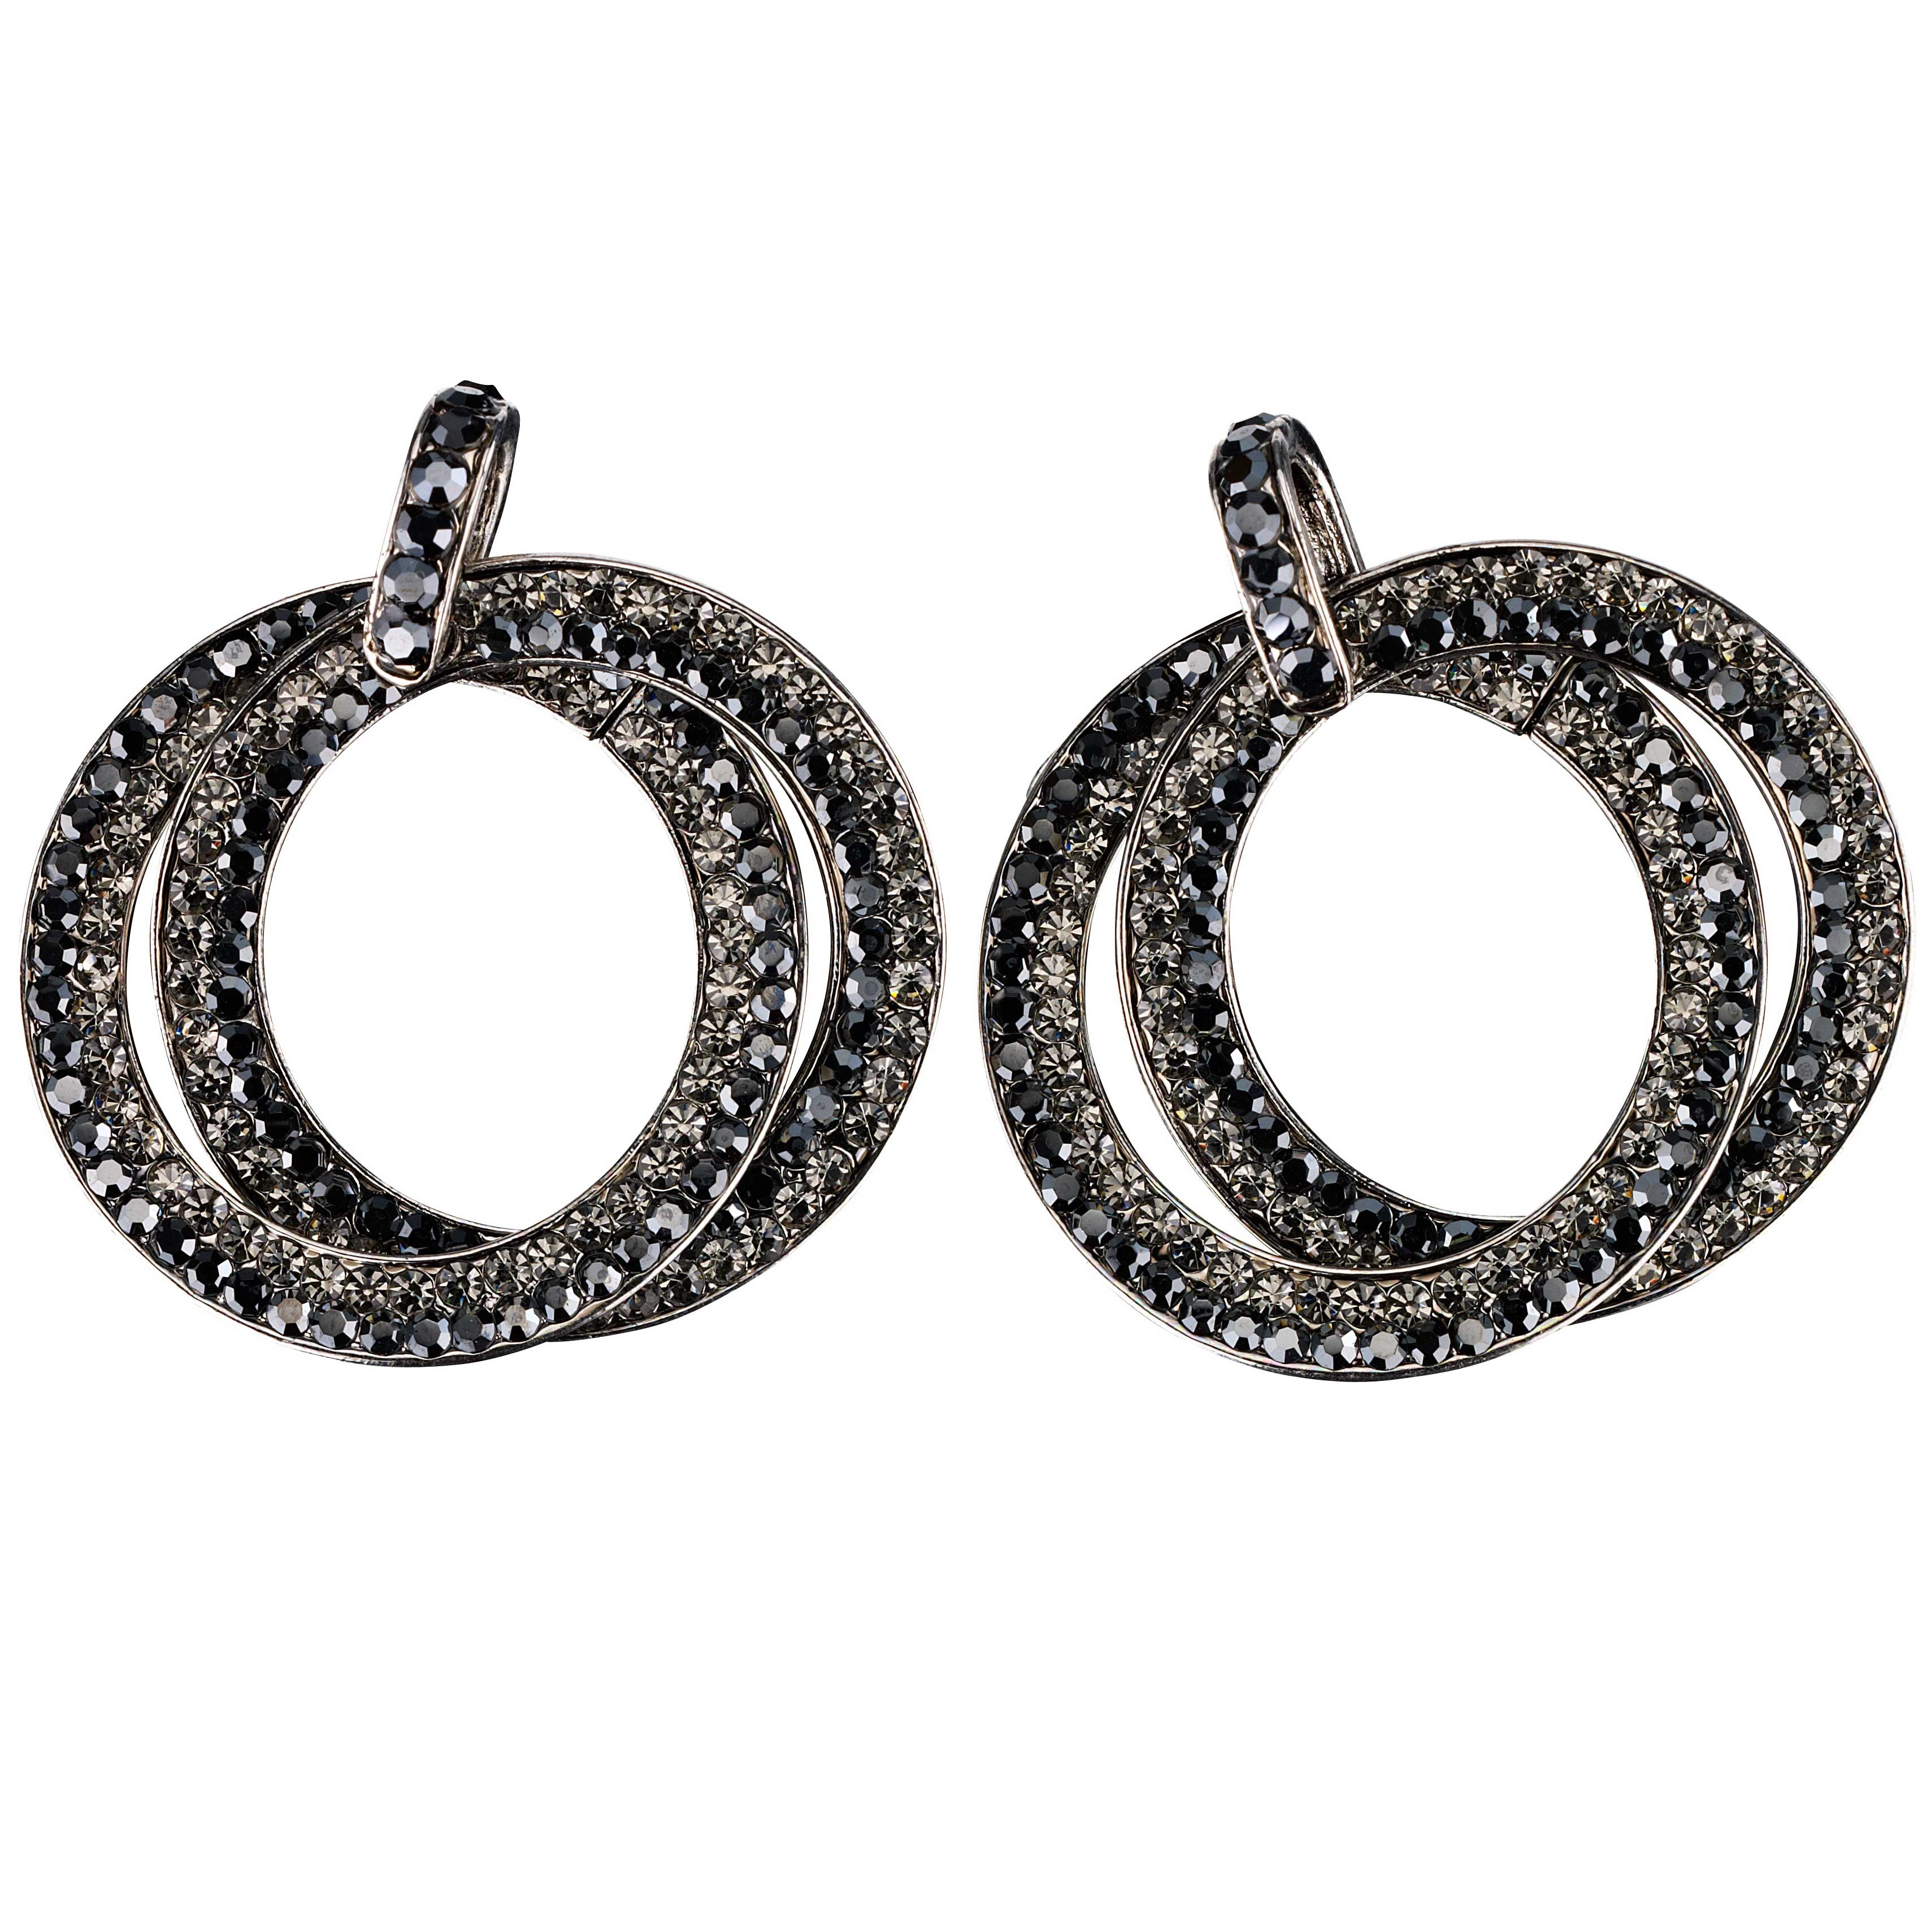 Double Circle Hoops Crystal Earrings with Jet Black and Black Diamond  Swarovski Crystal - length 45mm b65d01573